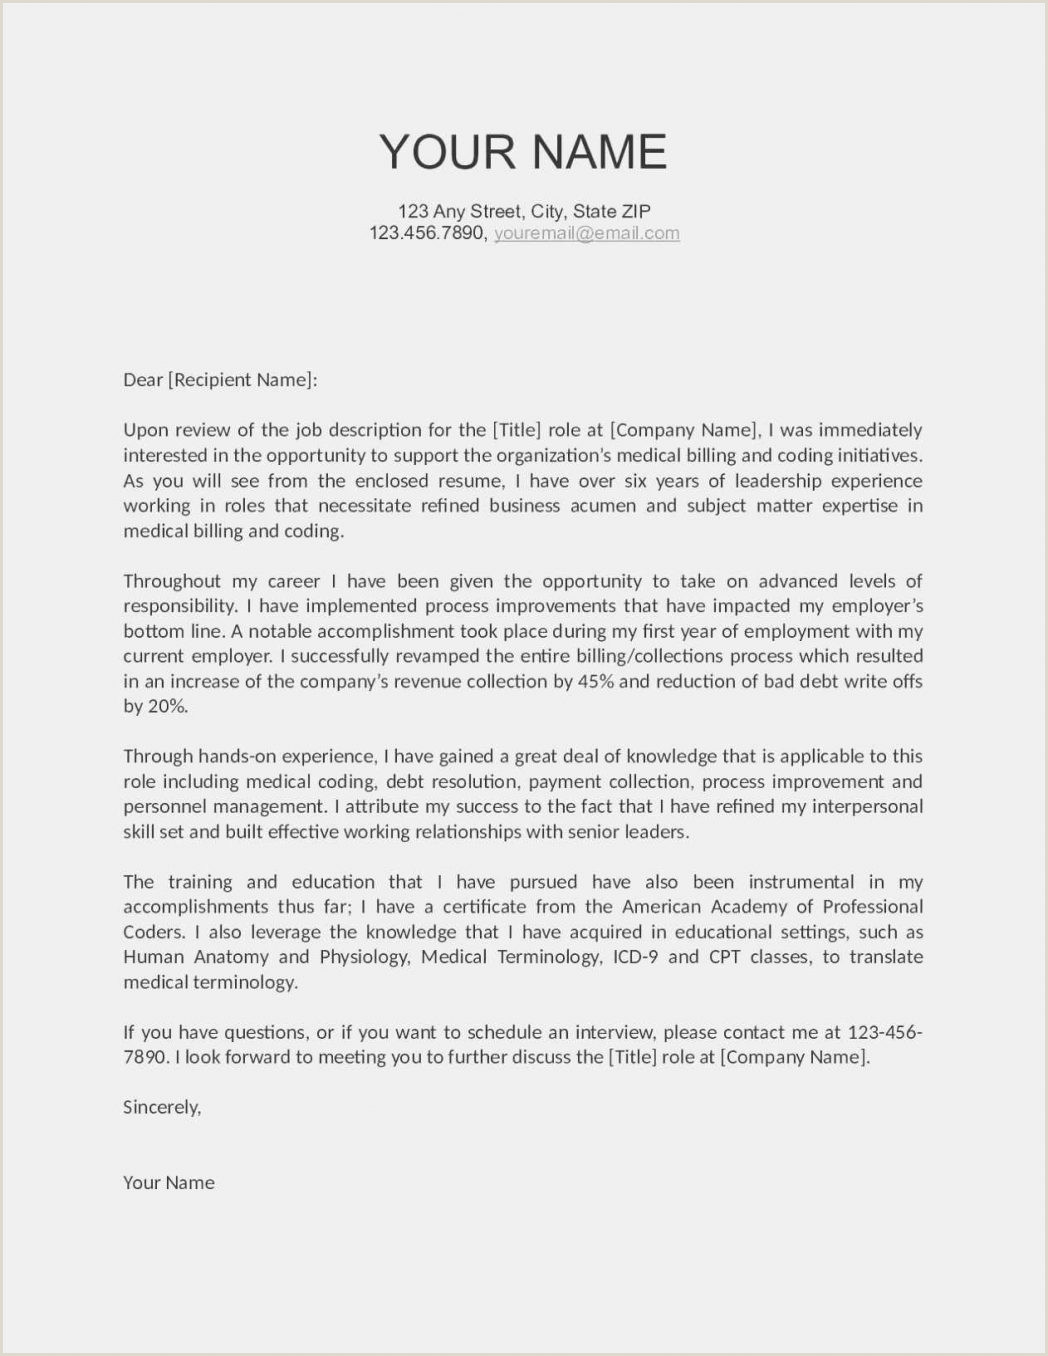 Sales Representative Cover Letter 10 Covering Letter Samples for Proposal Sample Cover Example